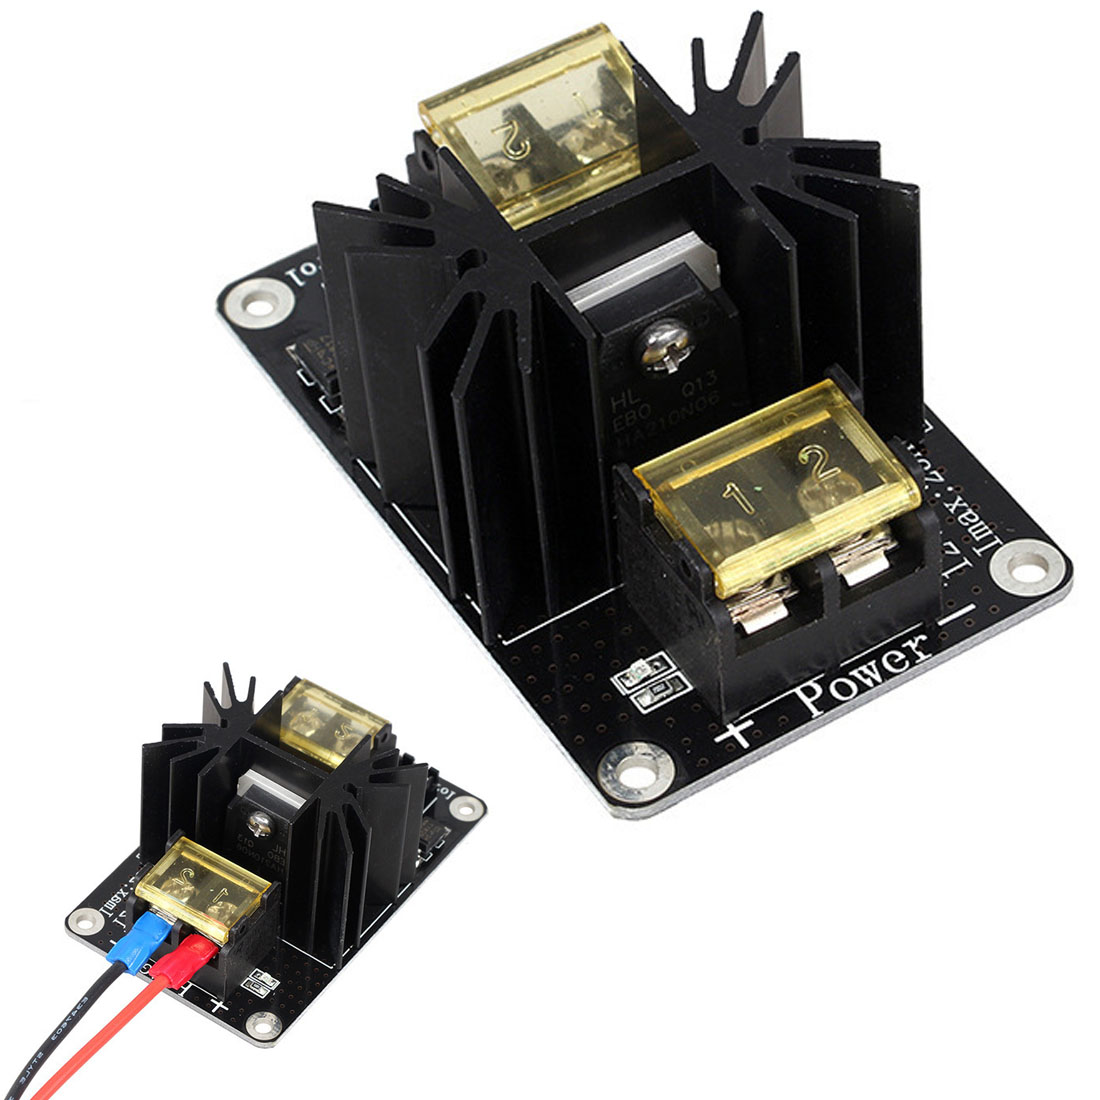 Etmakit New 3D Printer Parts General Add-on Heated Bed Power Expansion Module High Current 210A MOSFET Upgrade RAMPS 1.4 EM88 цены онлайн